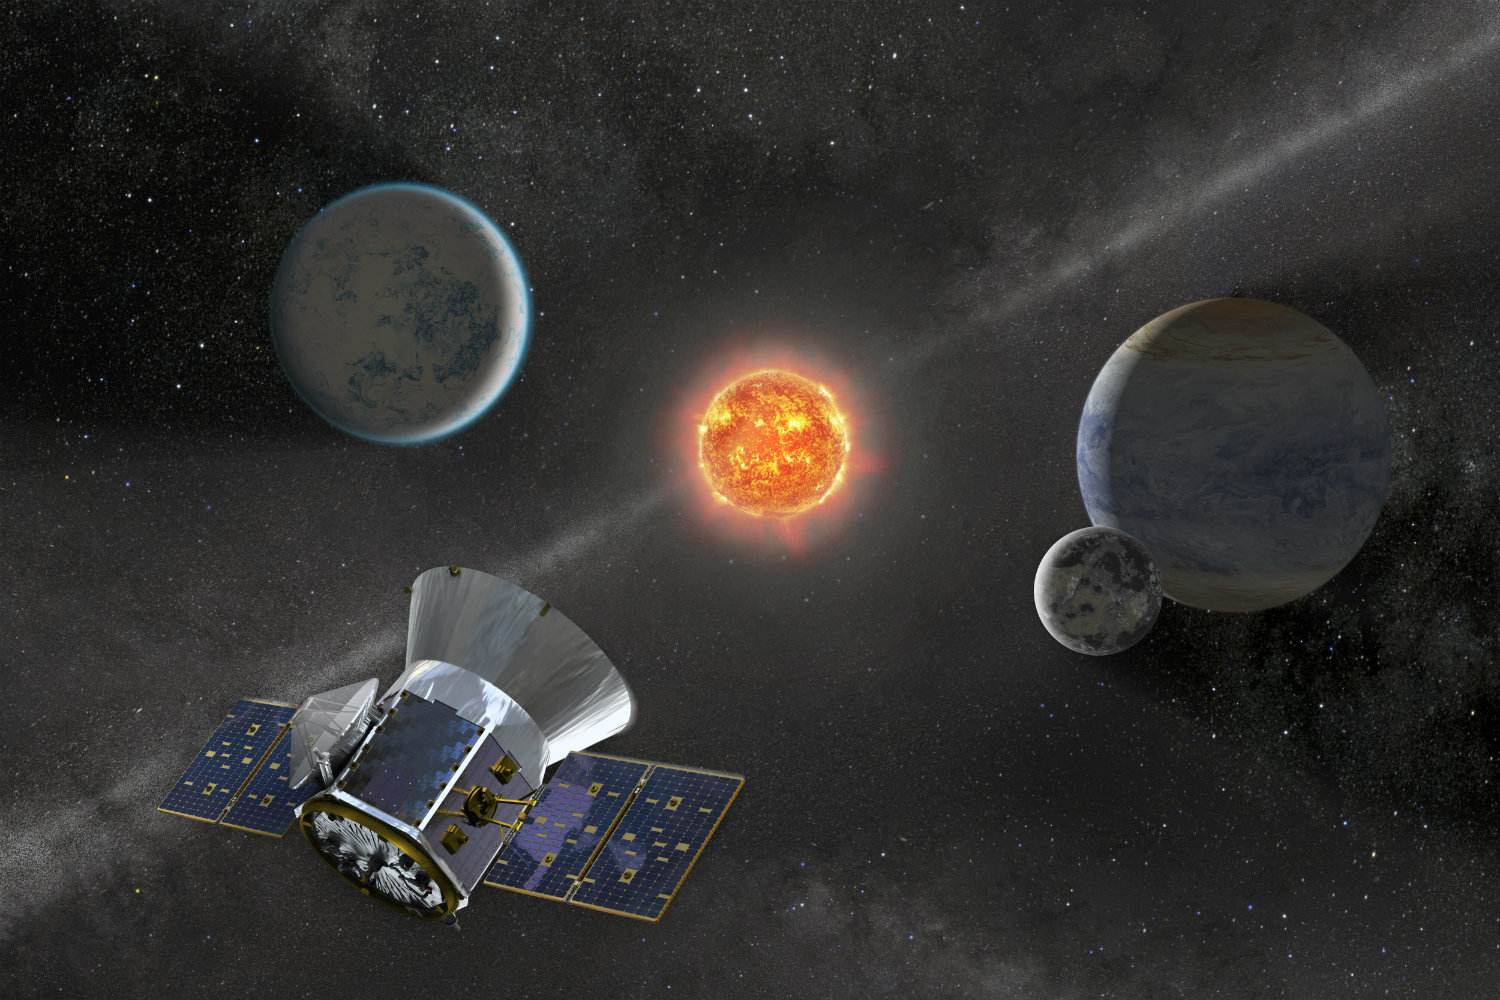 TESS telescope found an exoplanet in a red dwarf 38